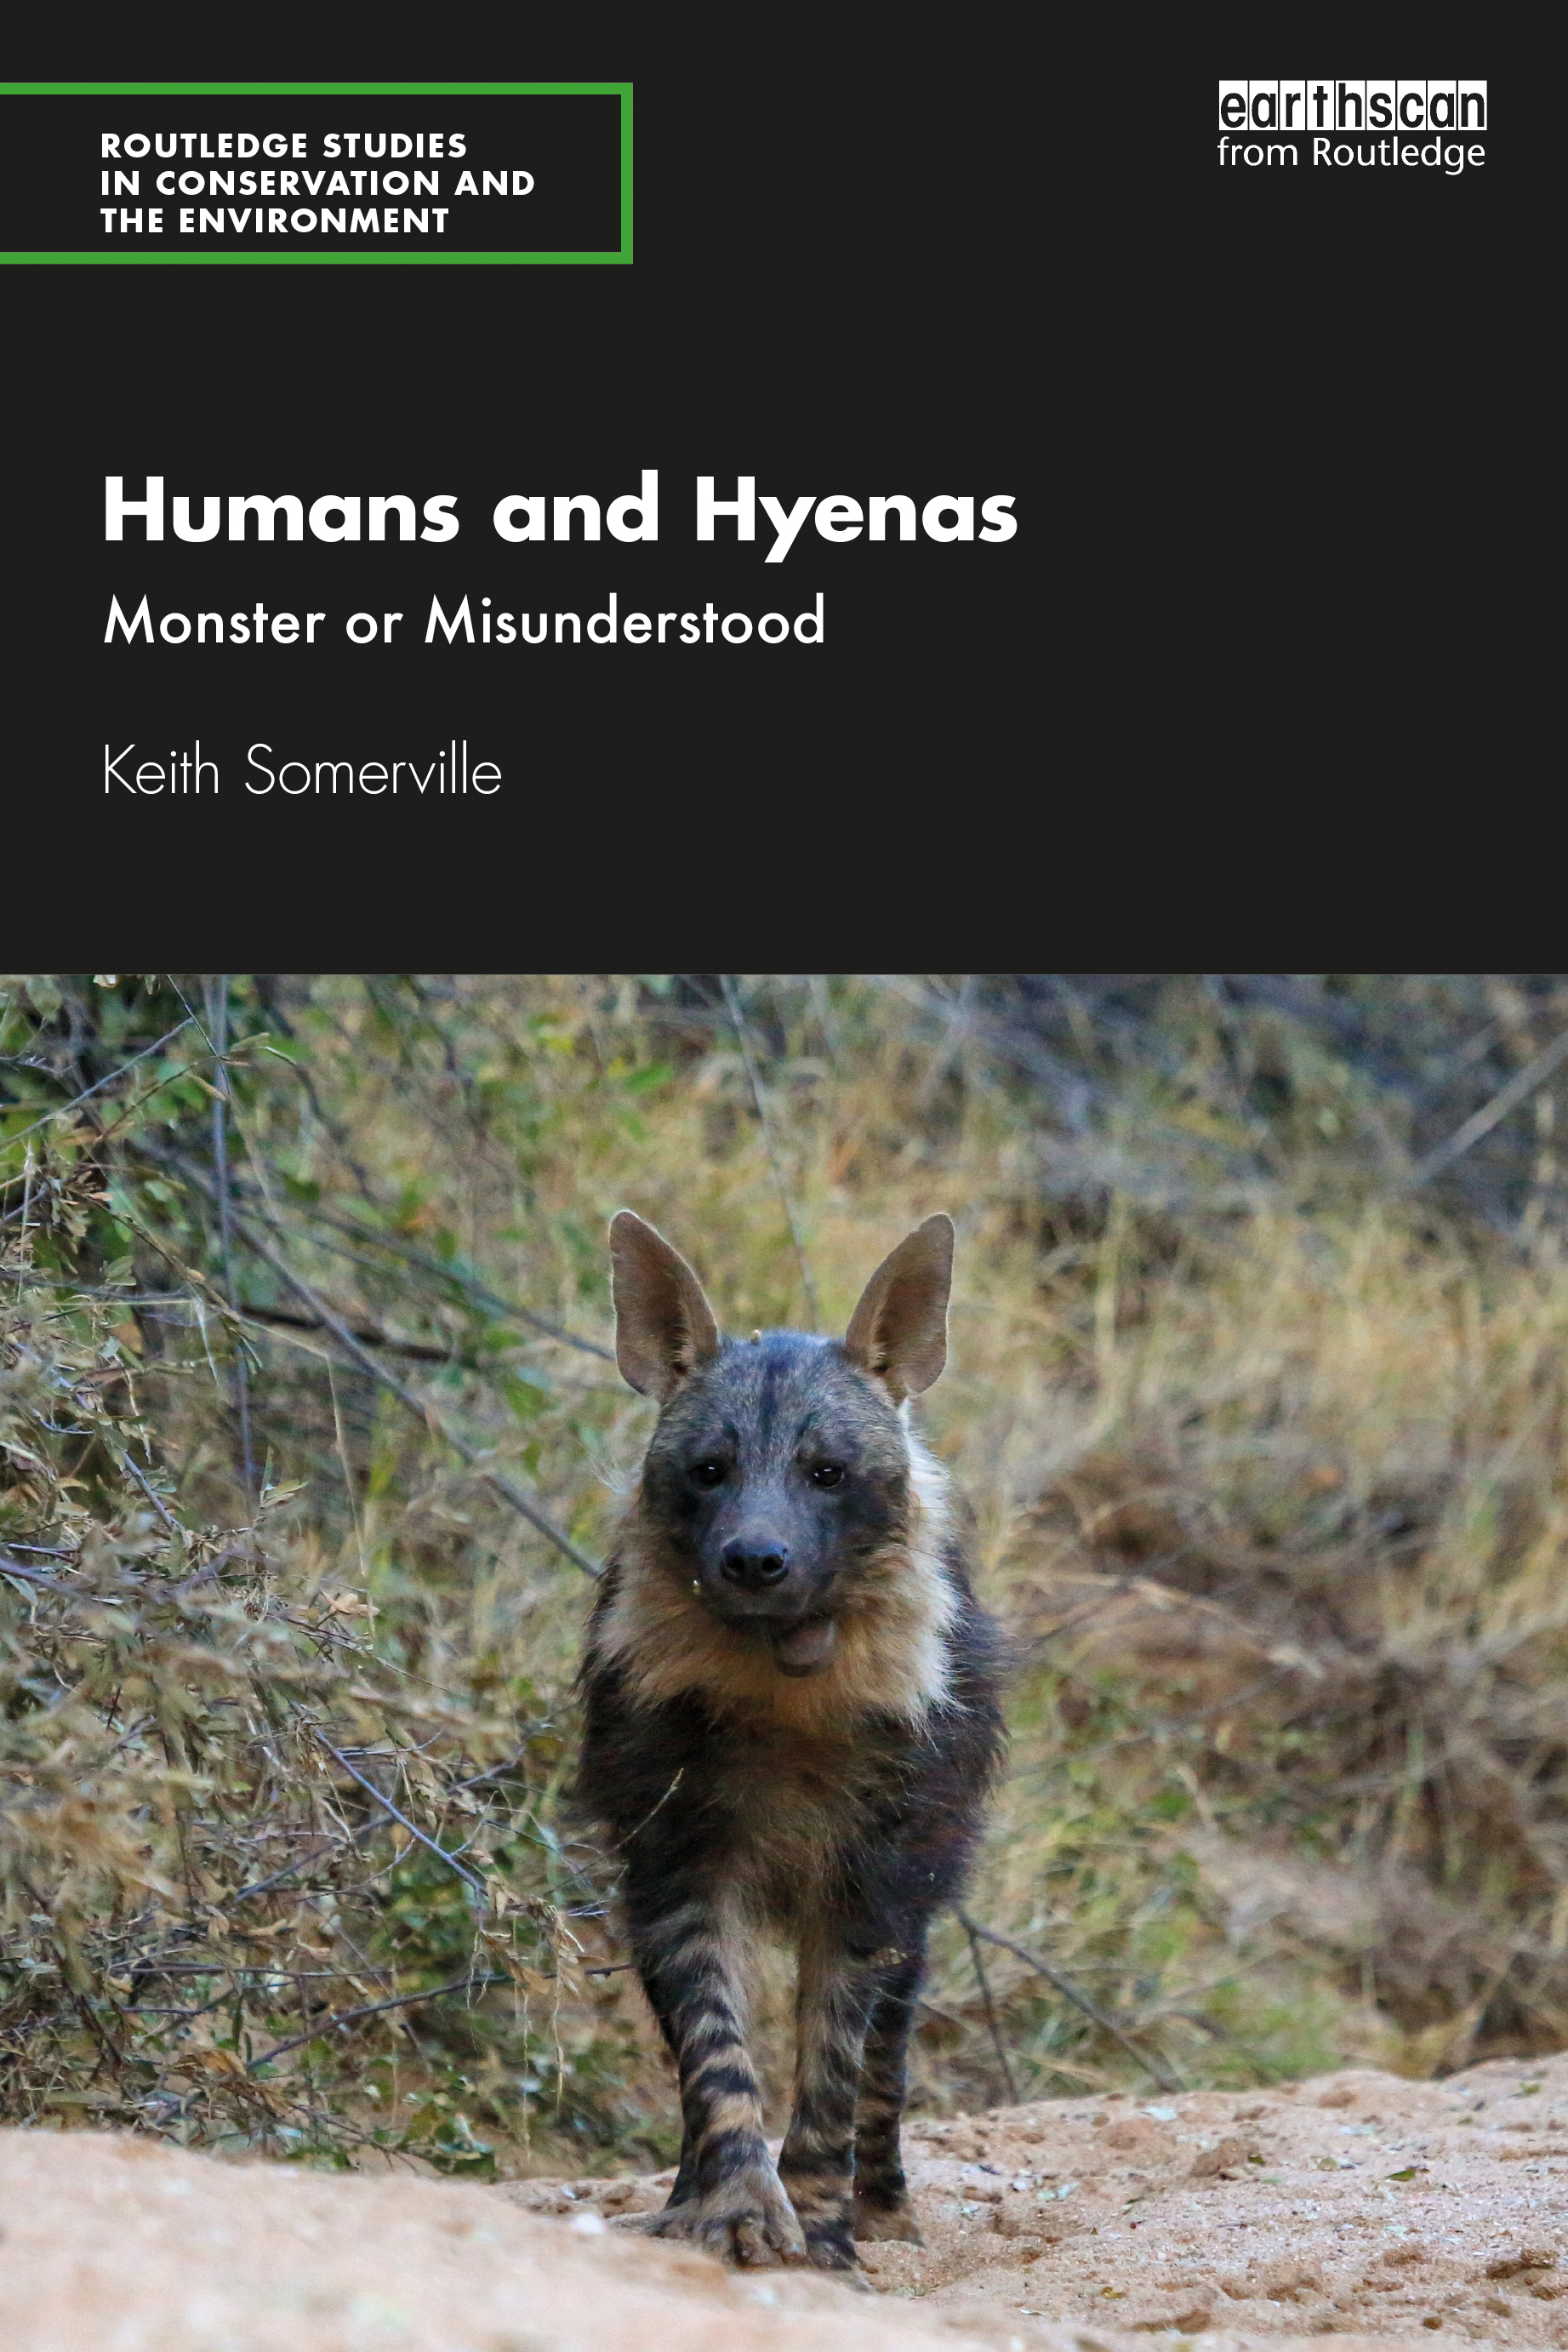 Humans and hyenas in West, Central and South Asia to 1600CE